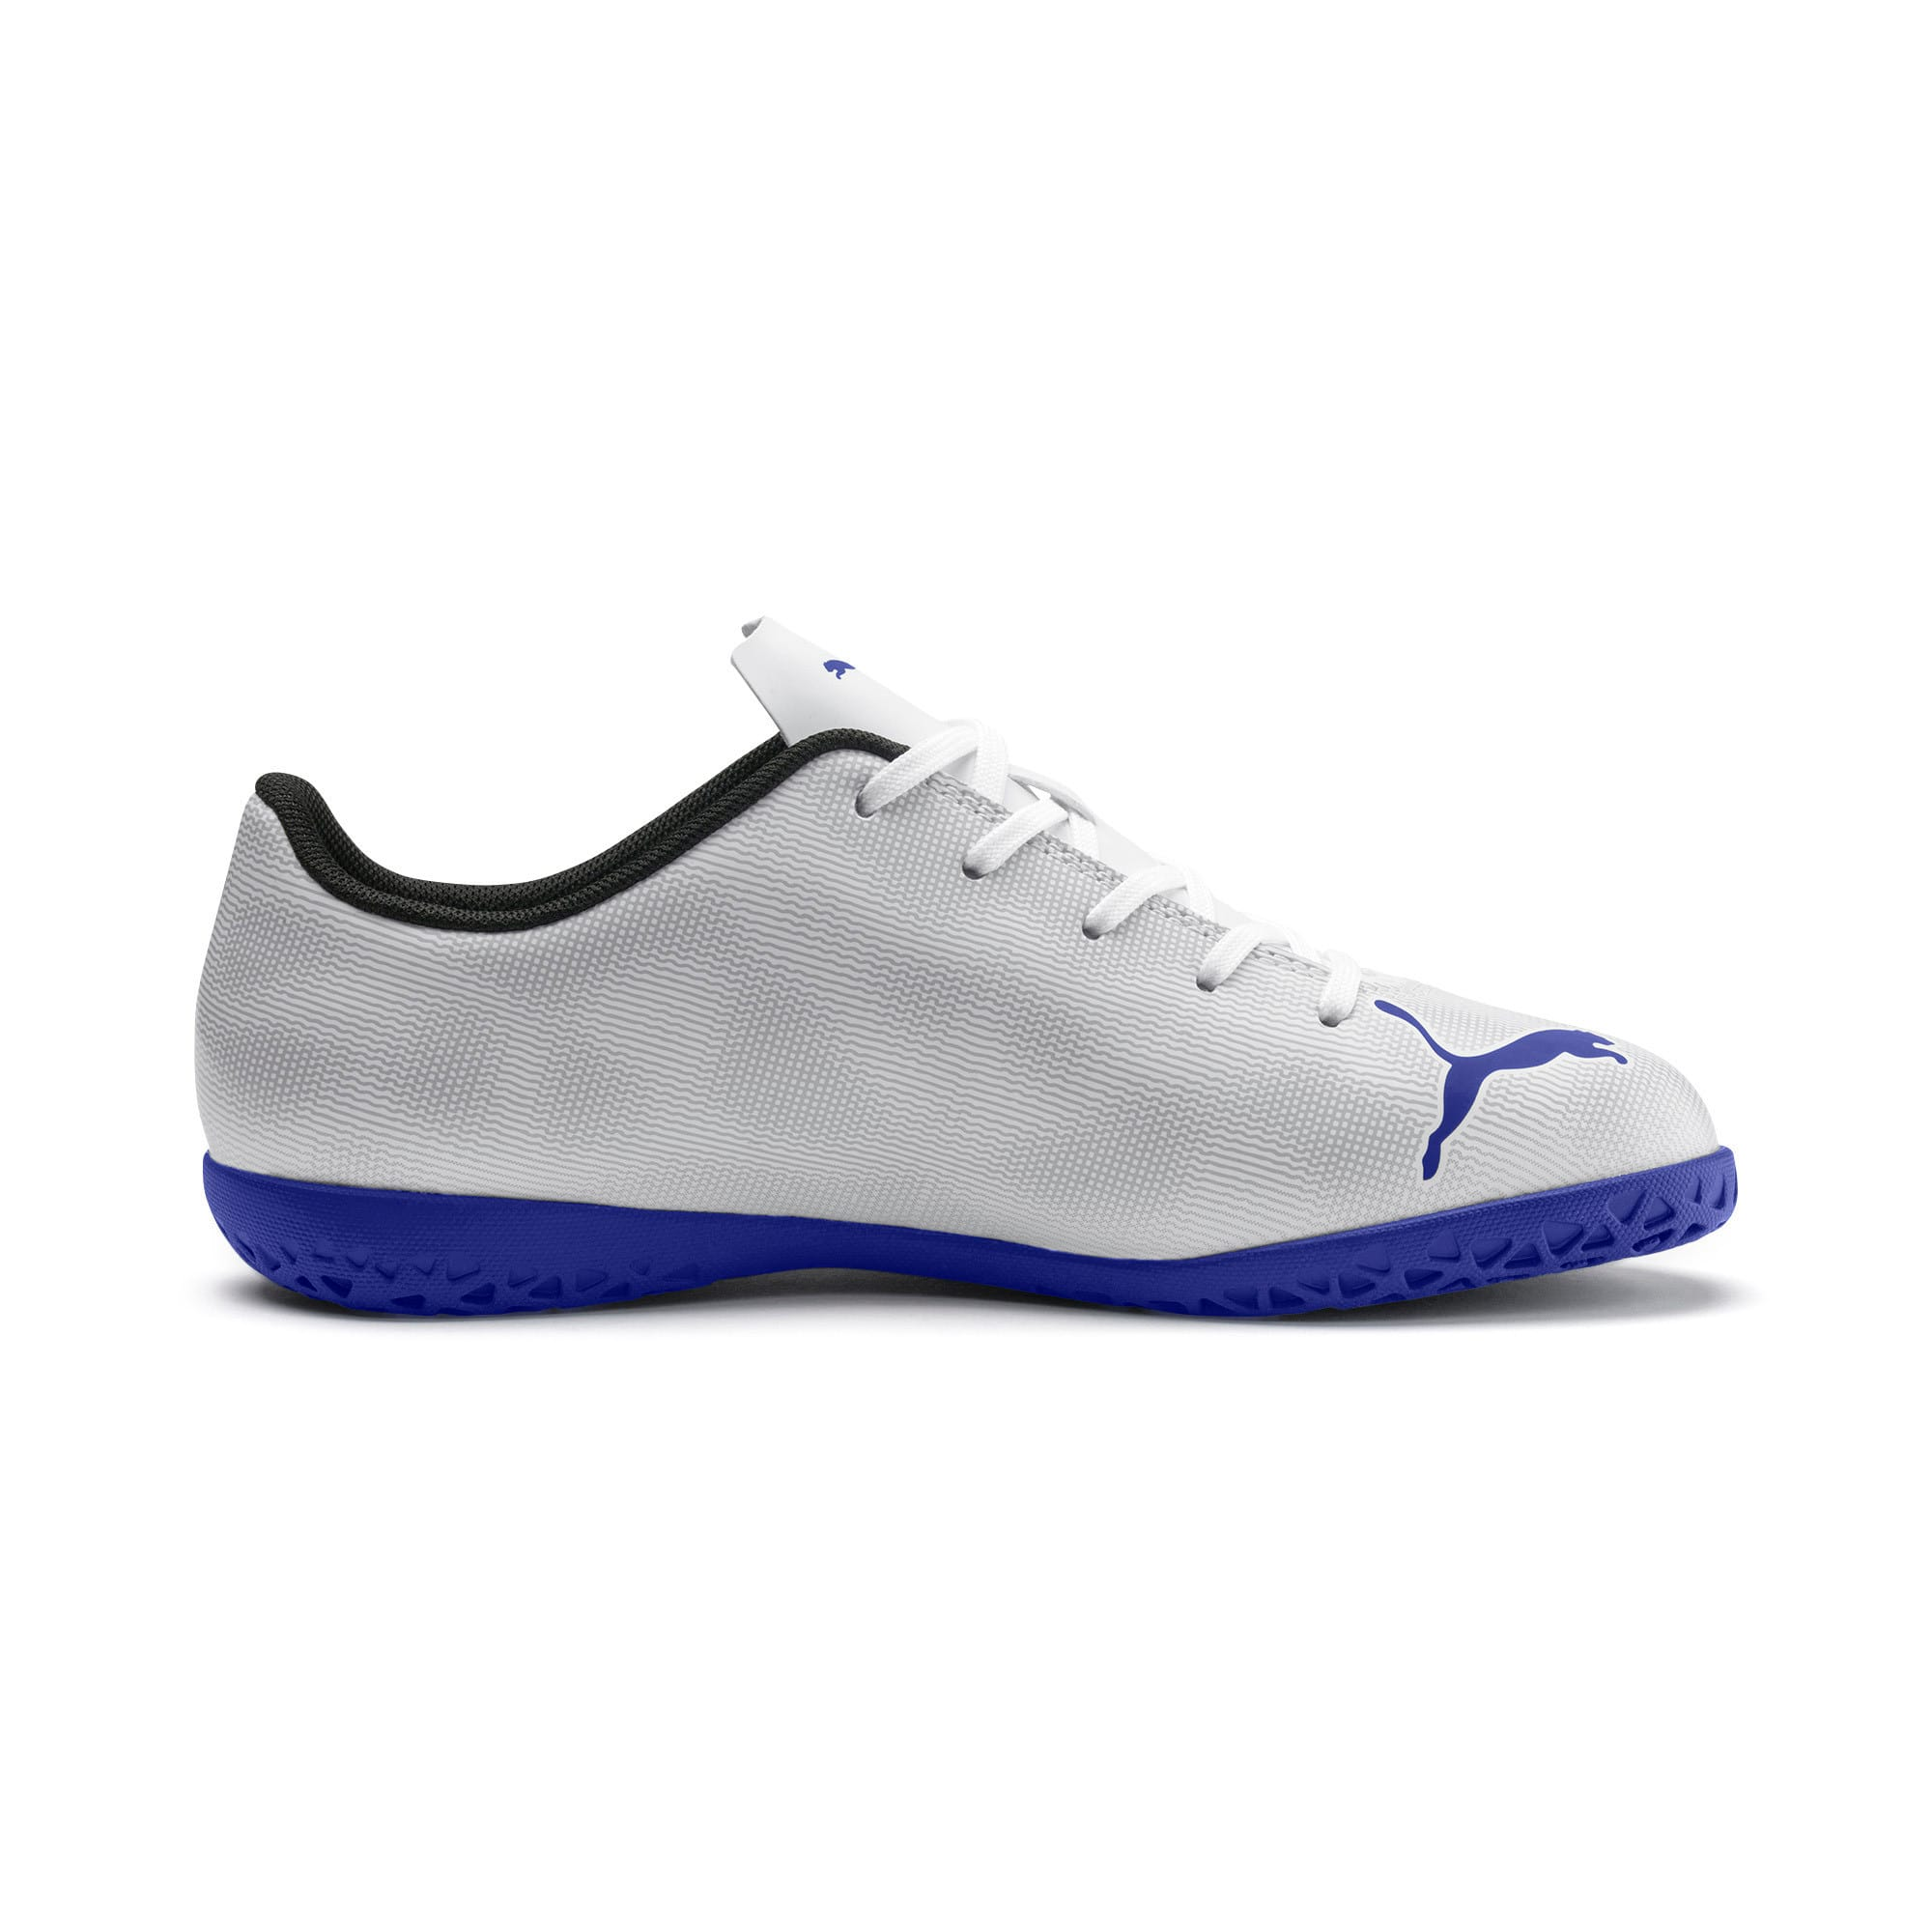 Thumbnail 5 of Rapido IT Boy's Soccer Shoes JR, White-Royal Blue-Light Gray, medium